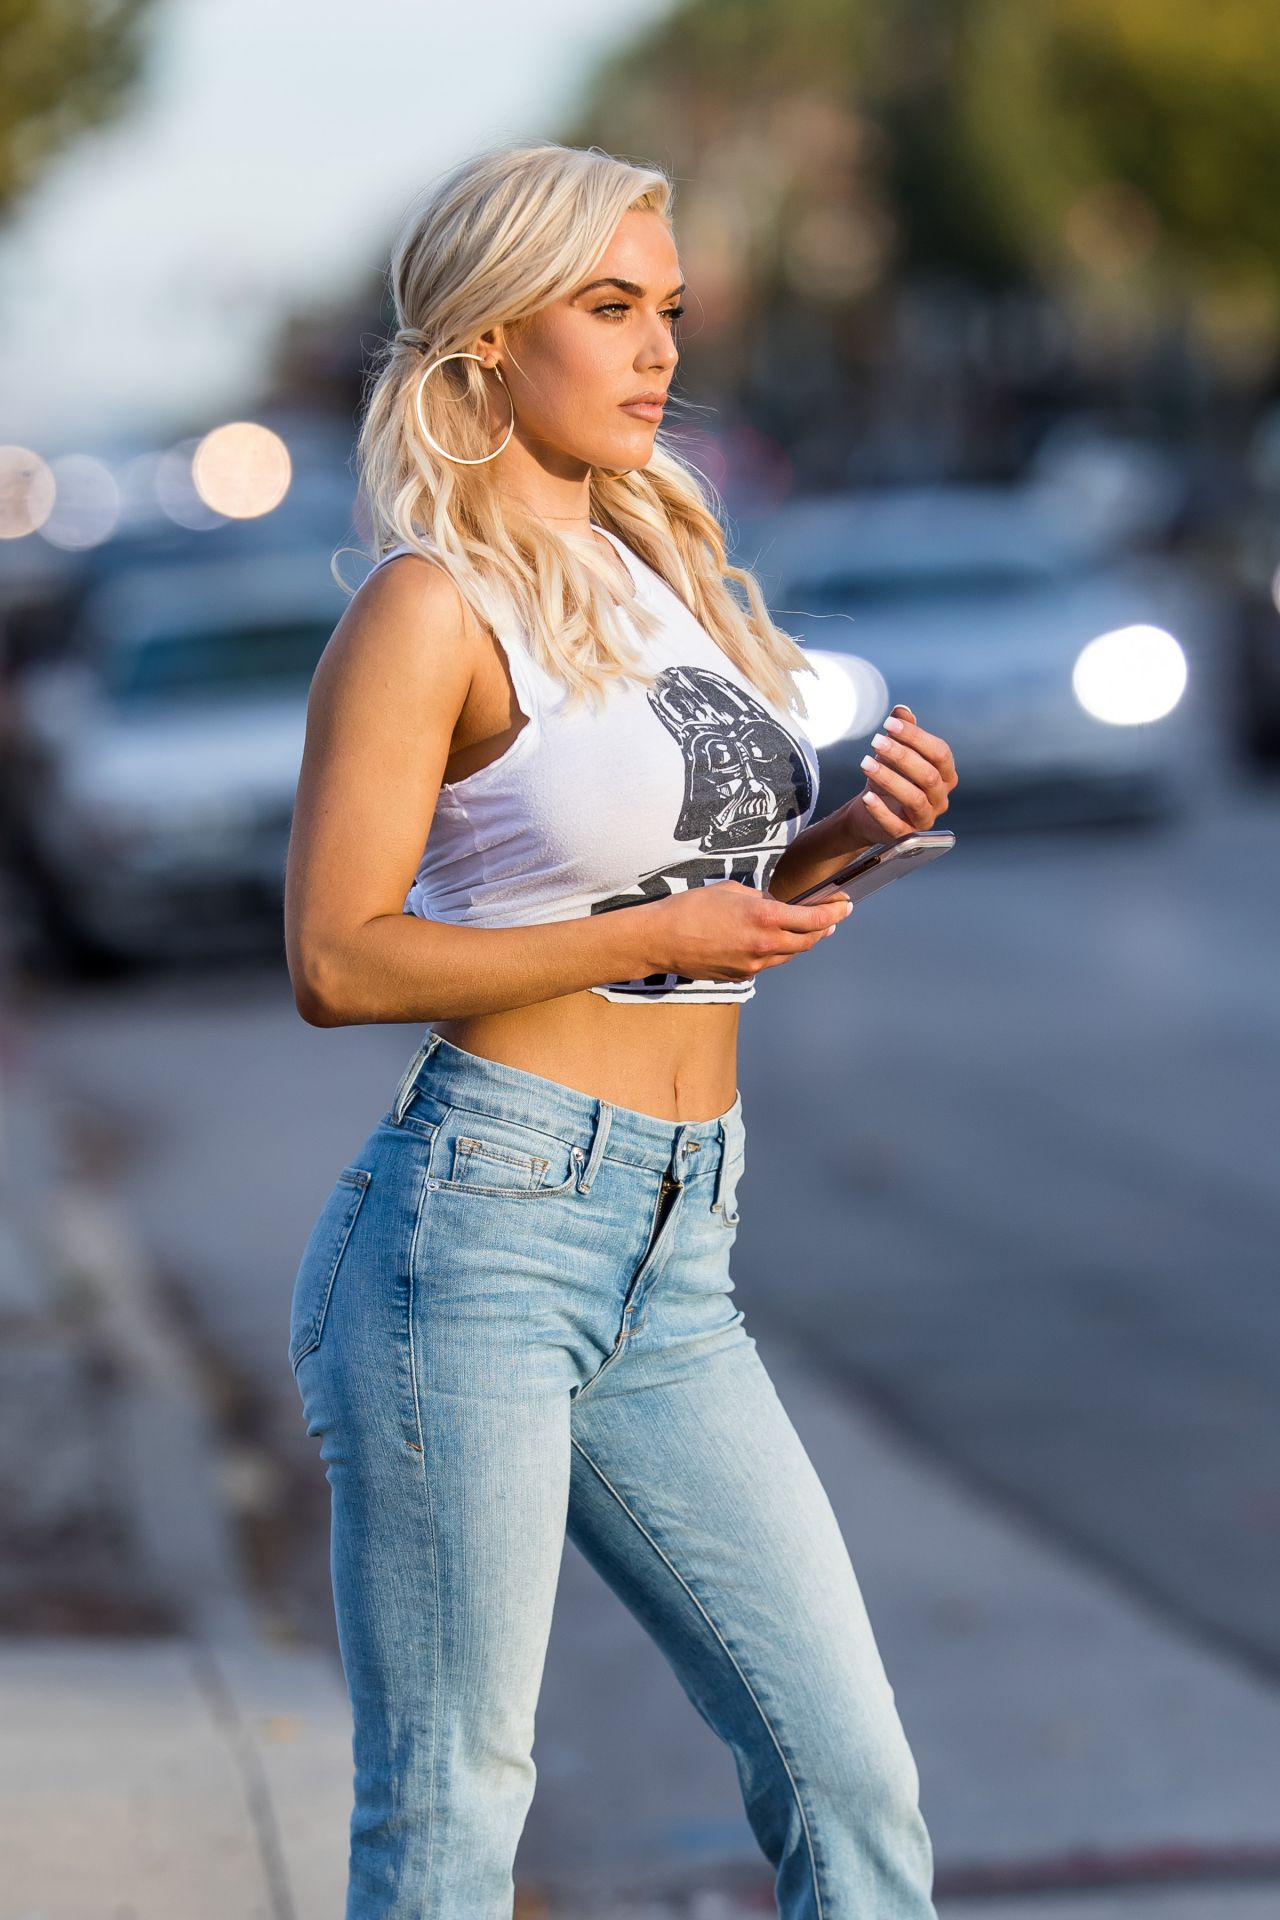 Lana Cj Perry In Tight Star Wars Tee And Jeans In Los